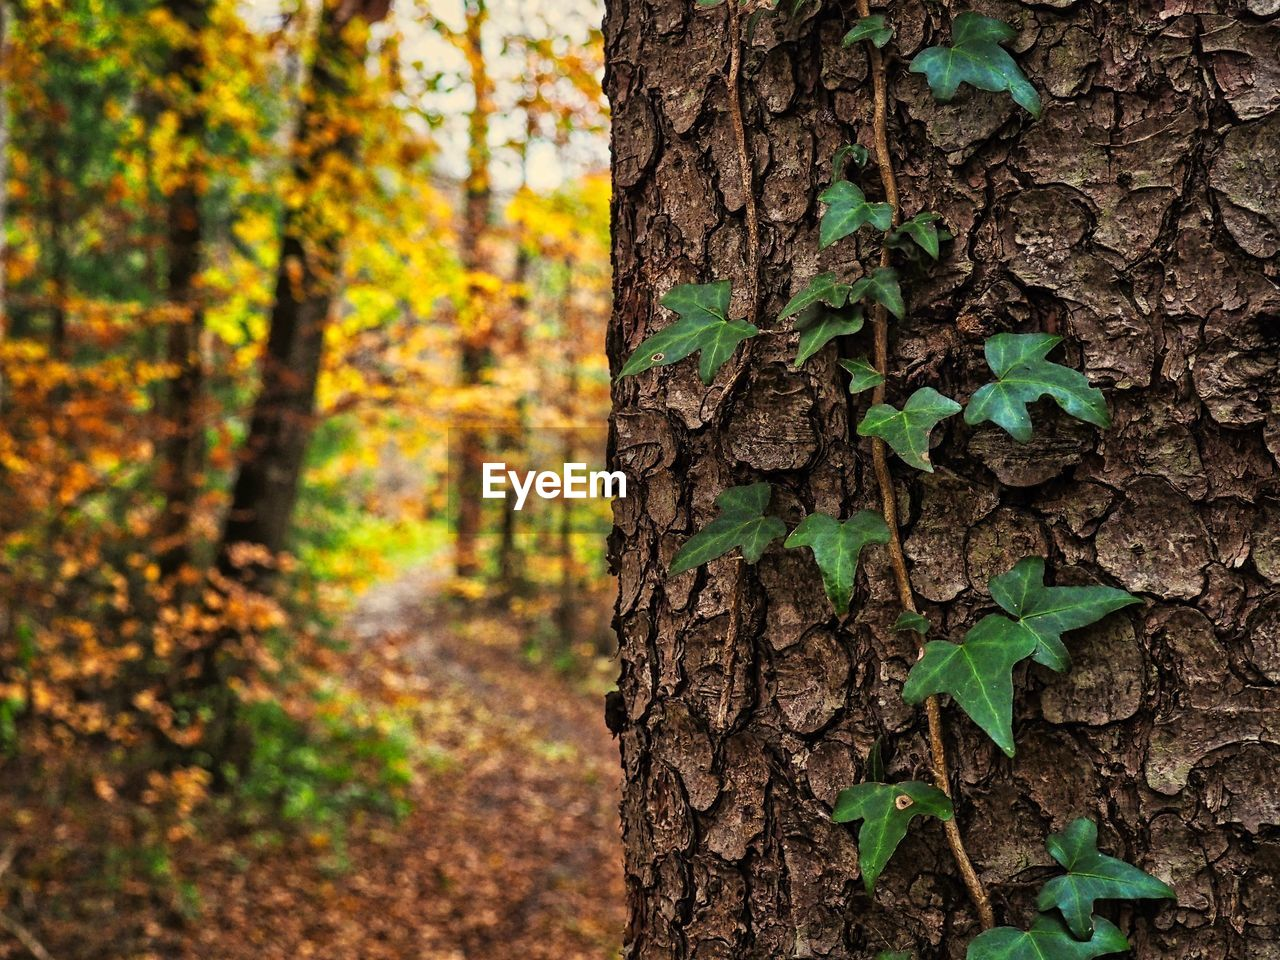 tree, tree trunk, trunk, plant, growth, land, leaf, green color, plant part, forest, focus on foreground, nature, beauty in nature, day, no people, outdoors, close-up, autumn, tranquility, change, woodland, bark, leaves